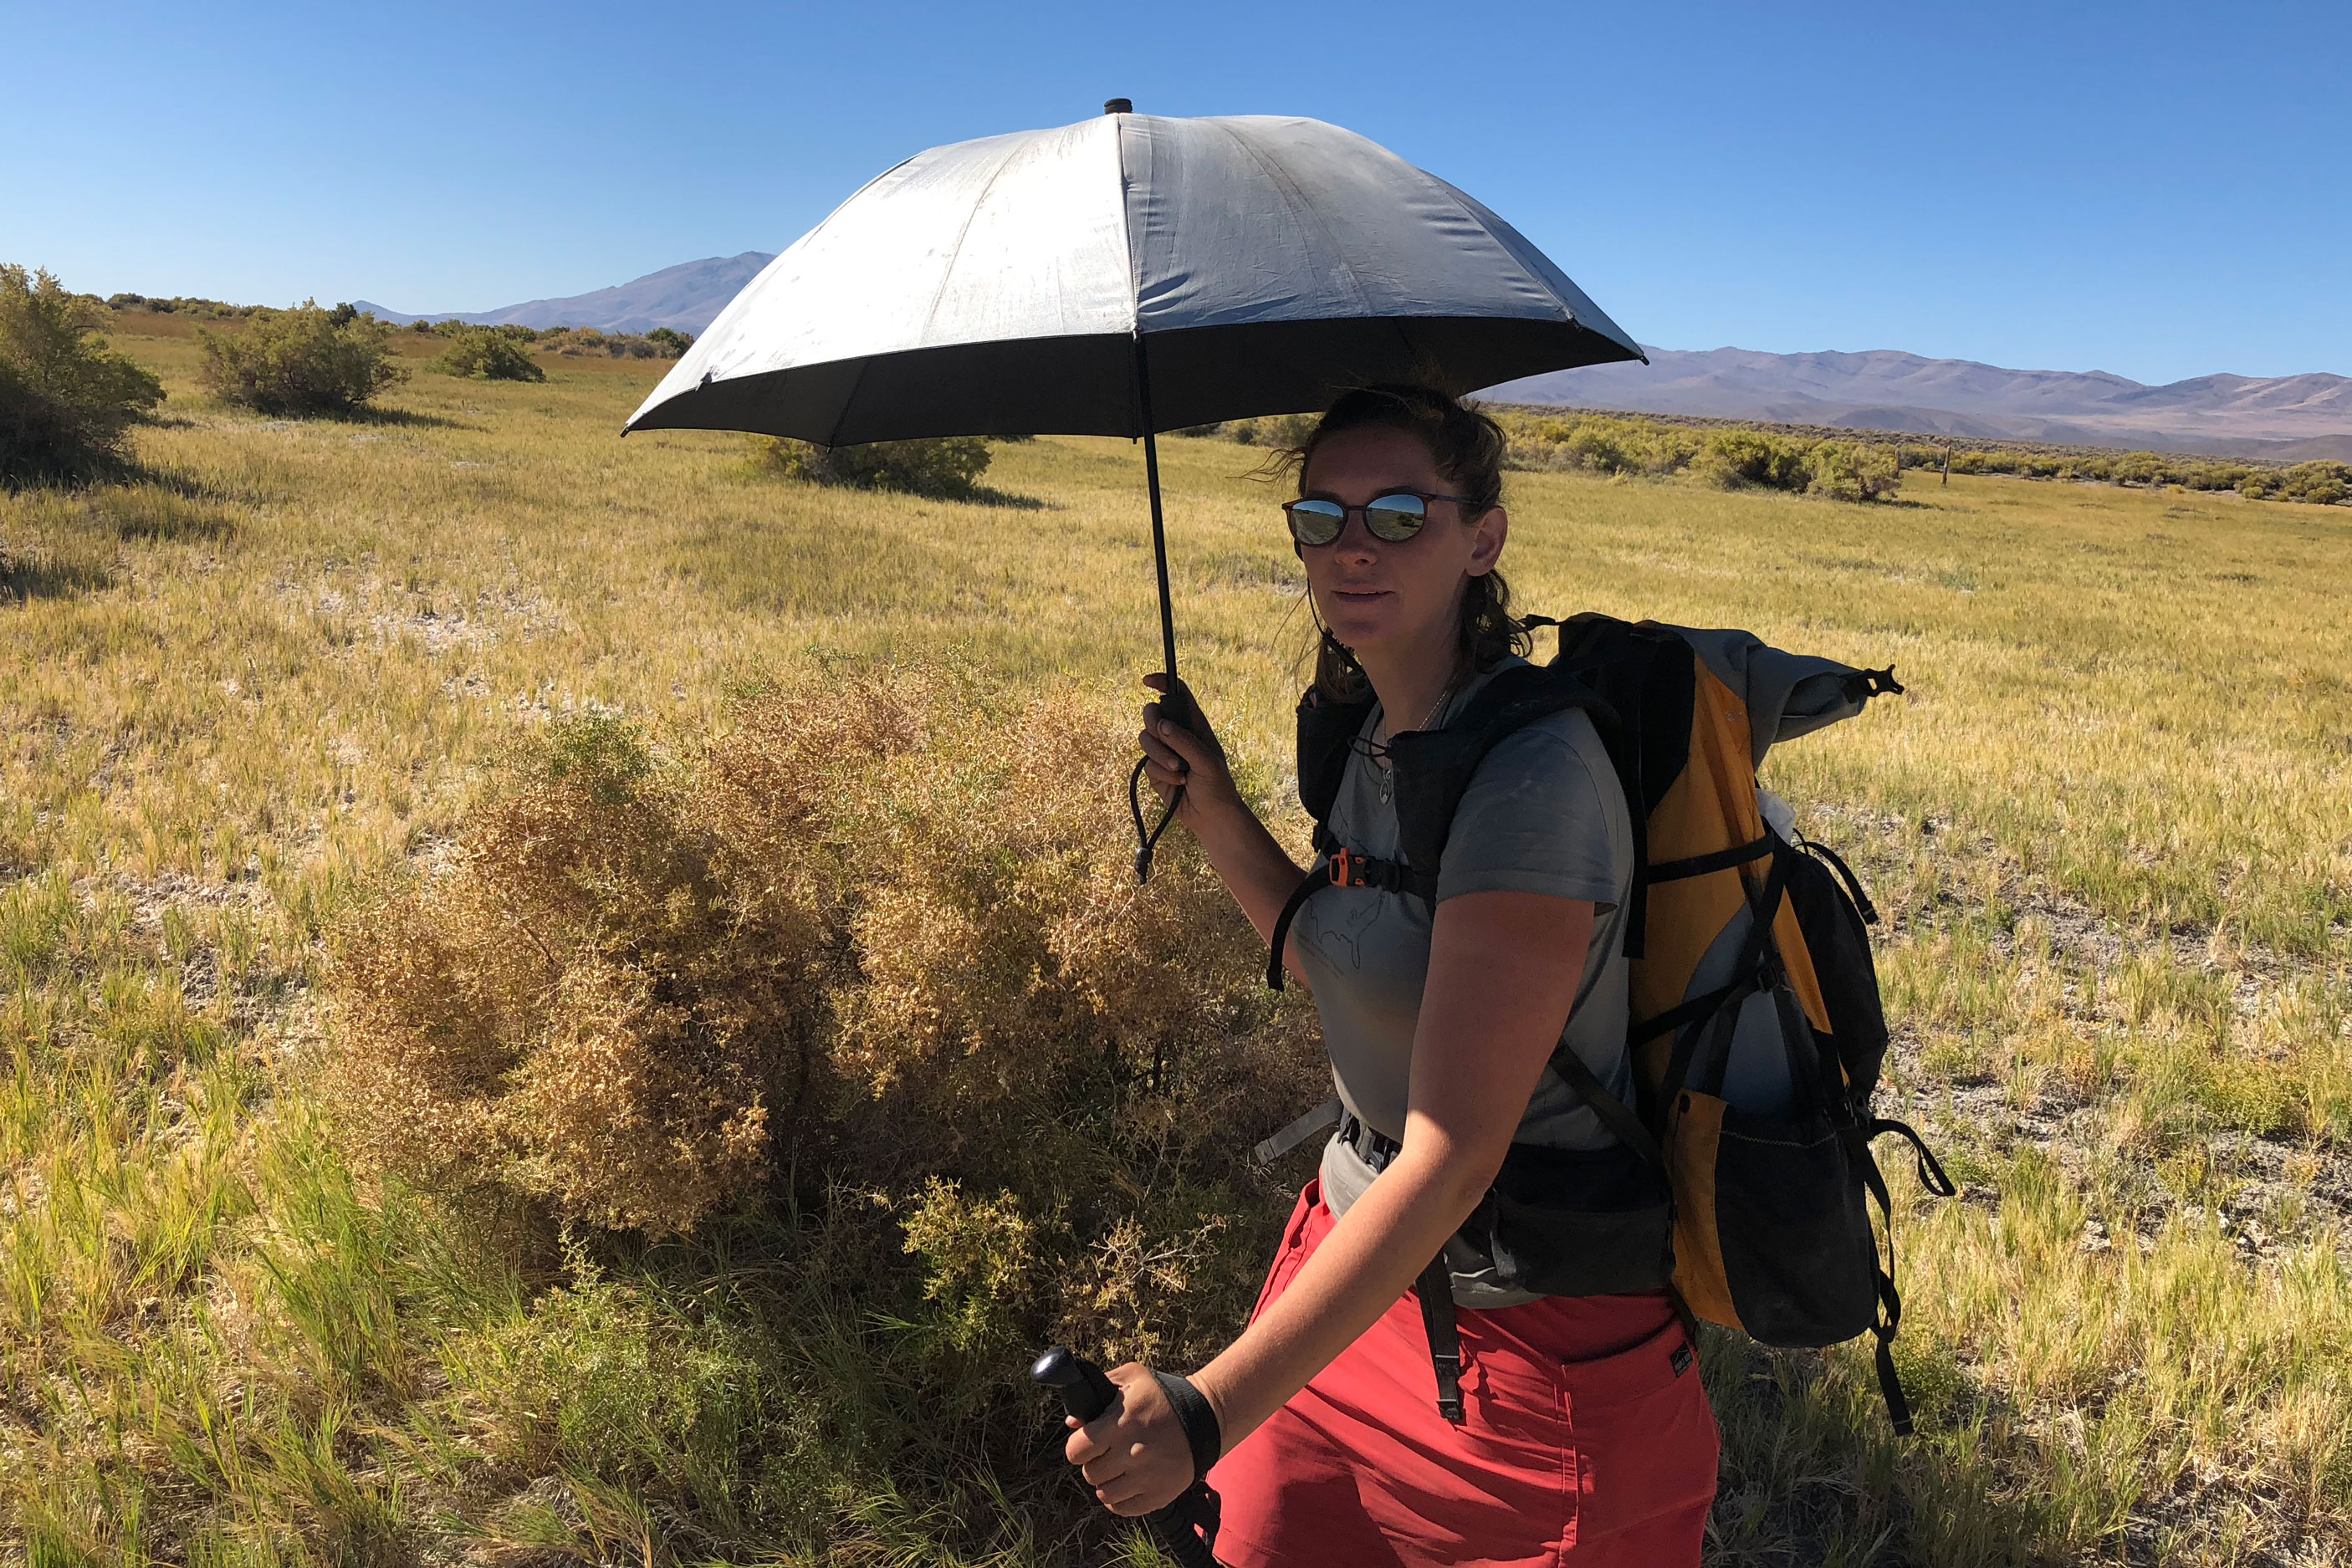 Hiker with umbrella